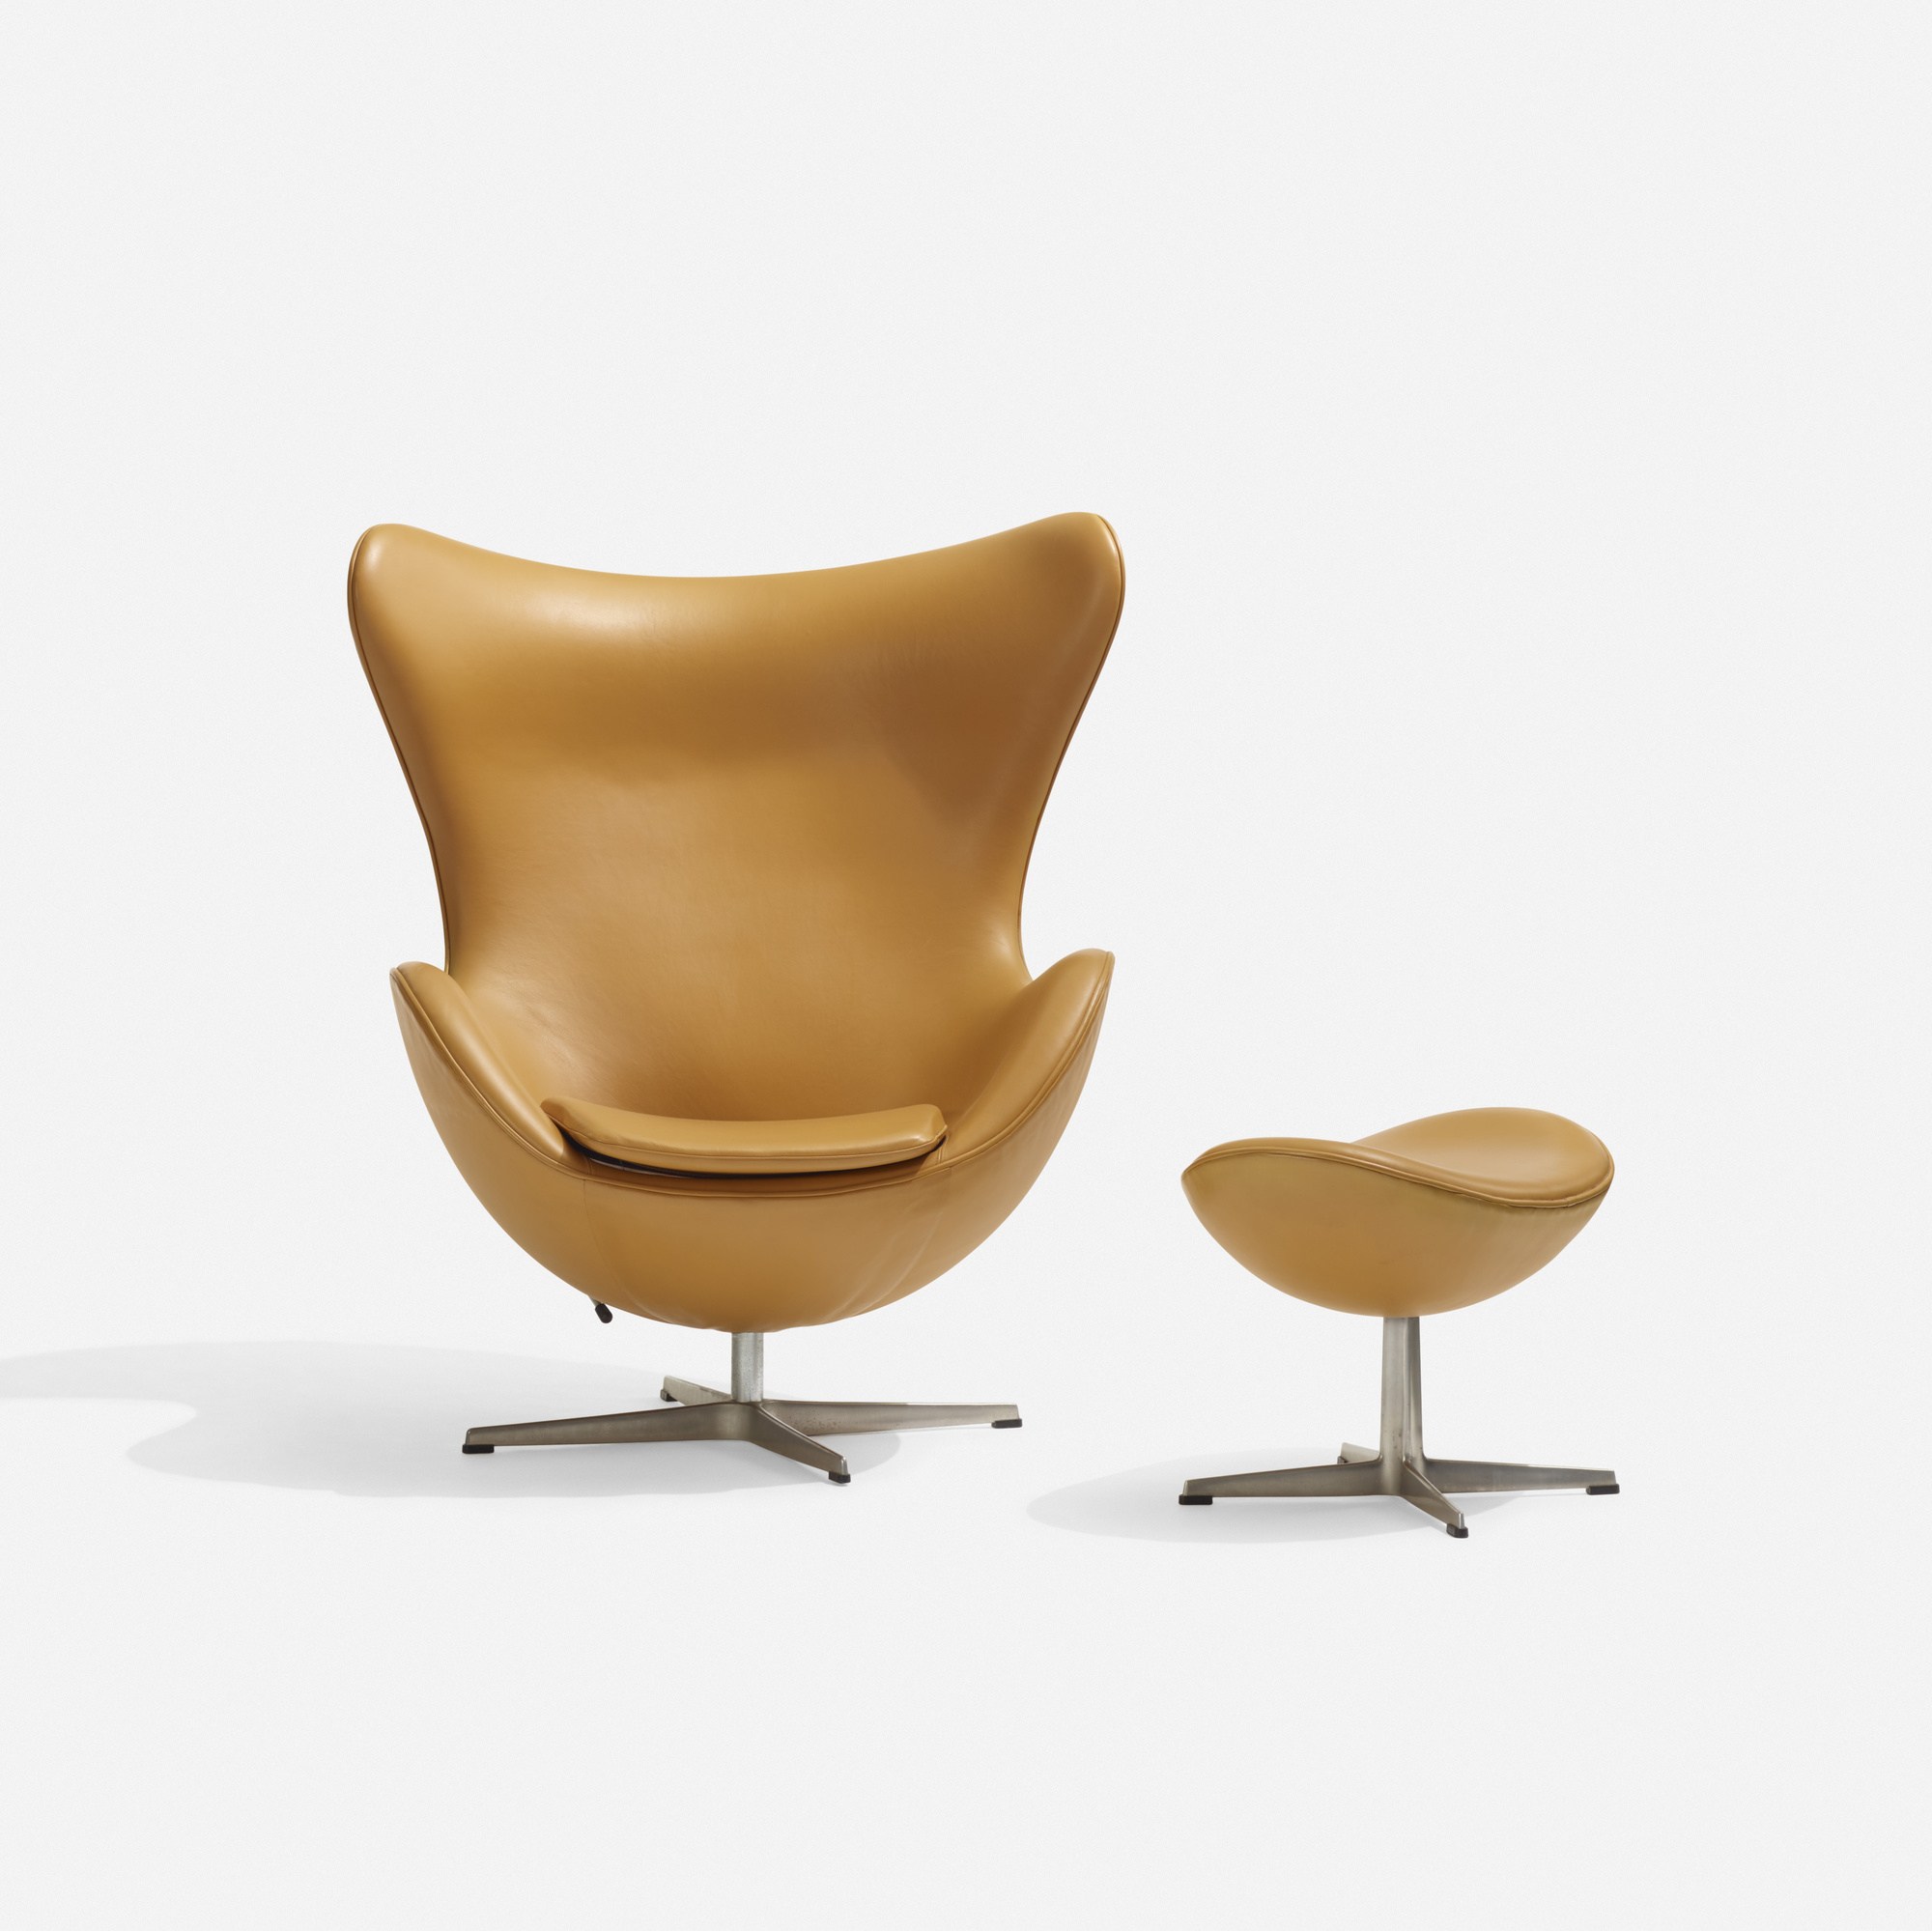 Pouf Design Egg Pouf Jacobsen : Arne jacobsen egg chair and ottoman